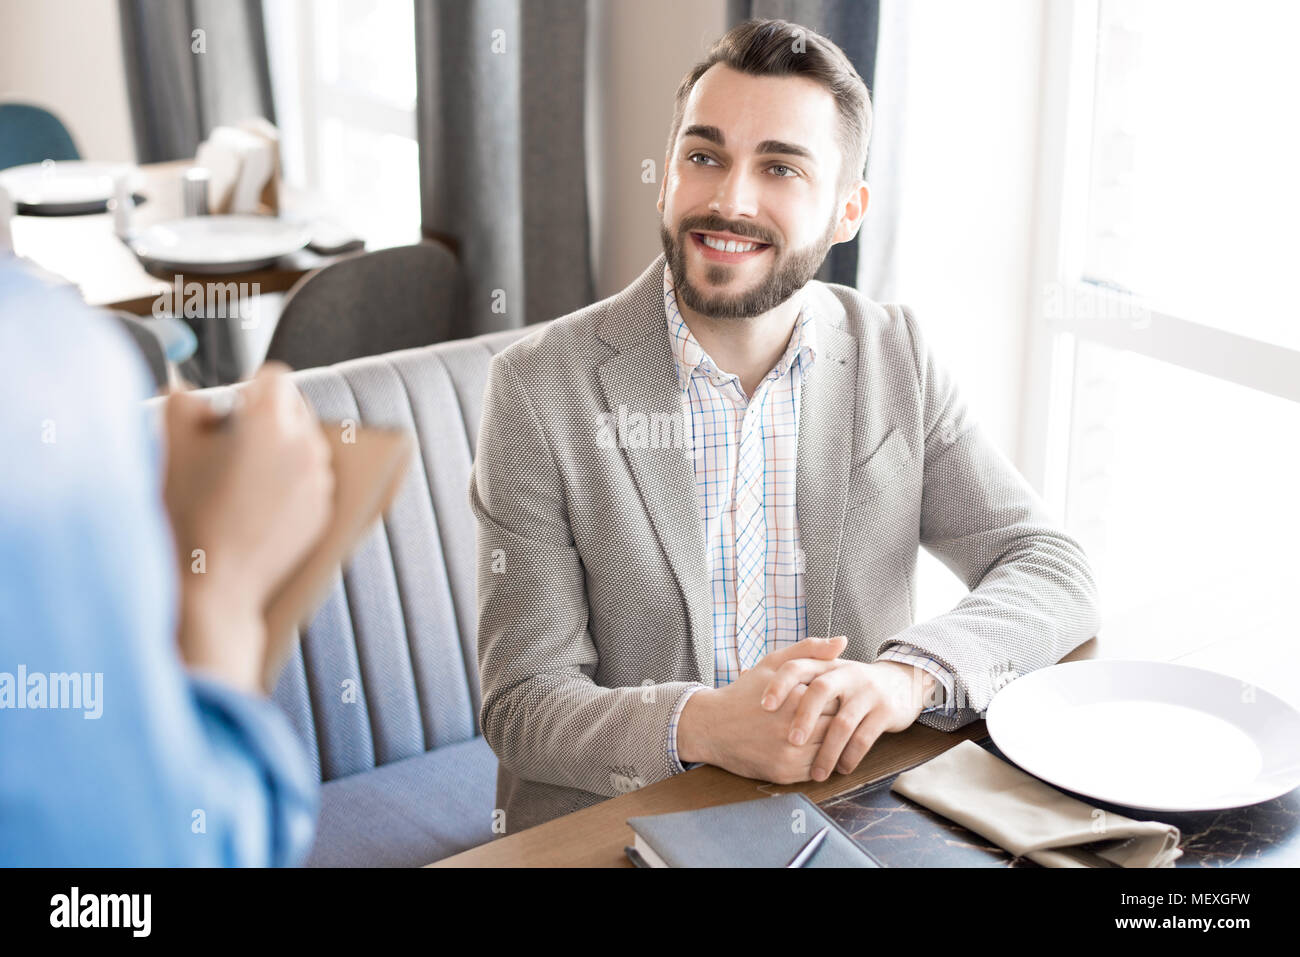 Cheerful businessman making order in restaurant - Stock Image